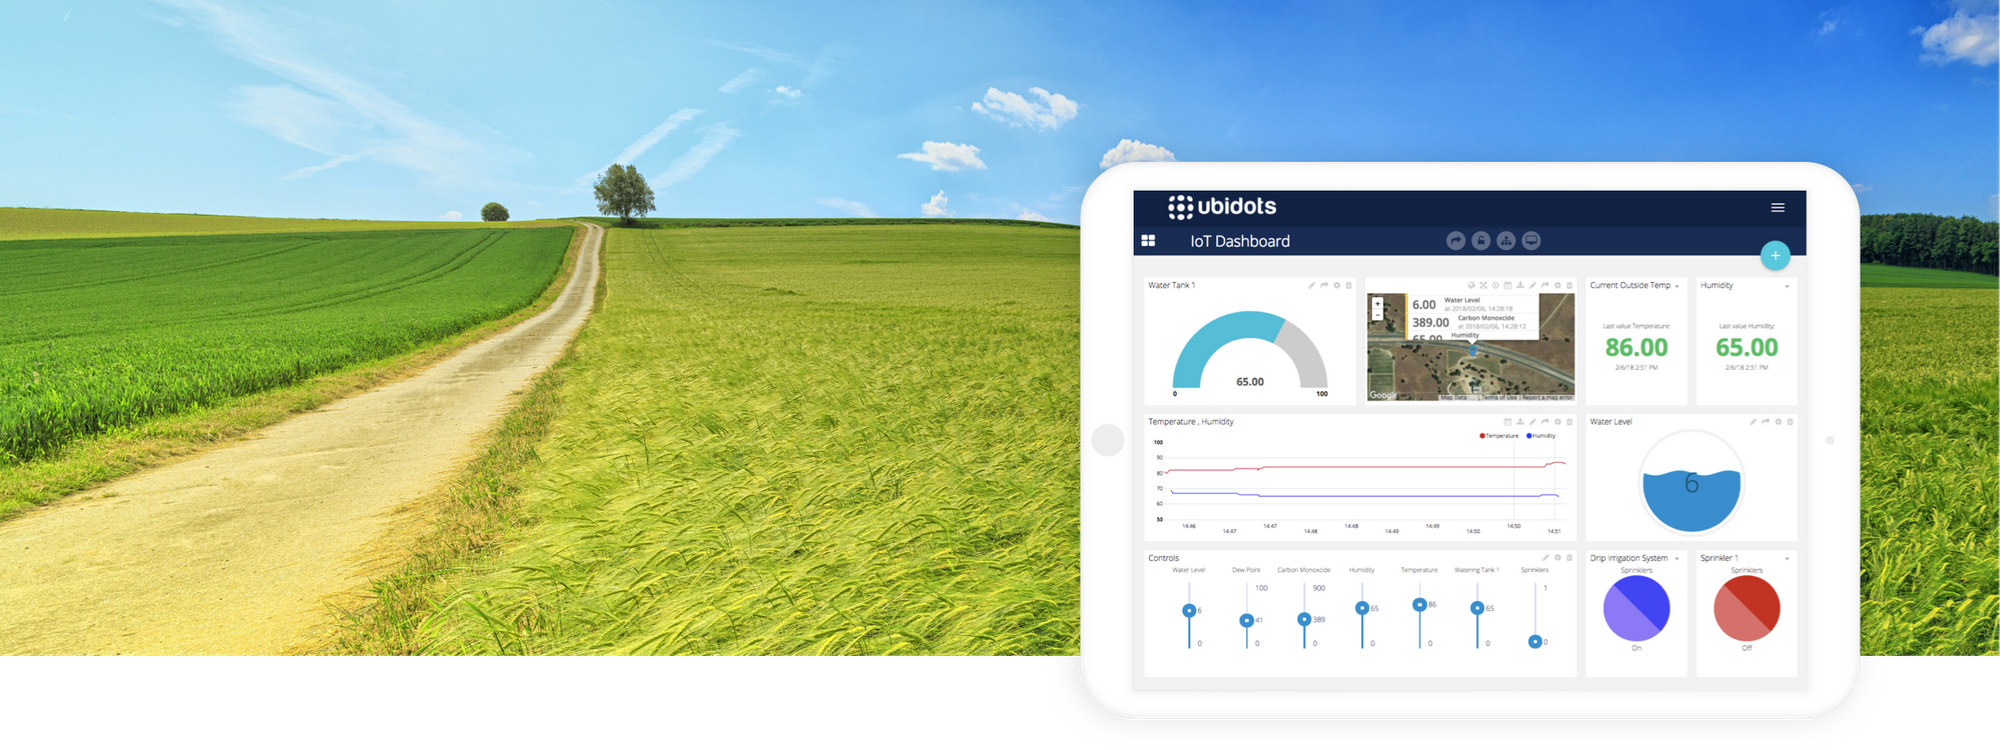 2020 became the year of IoT for agriculture